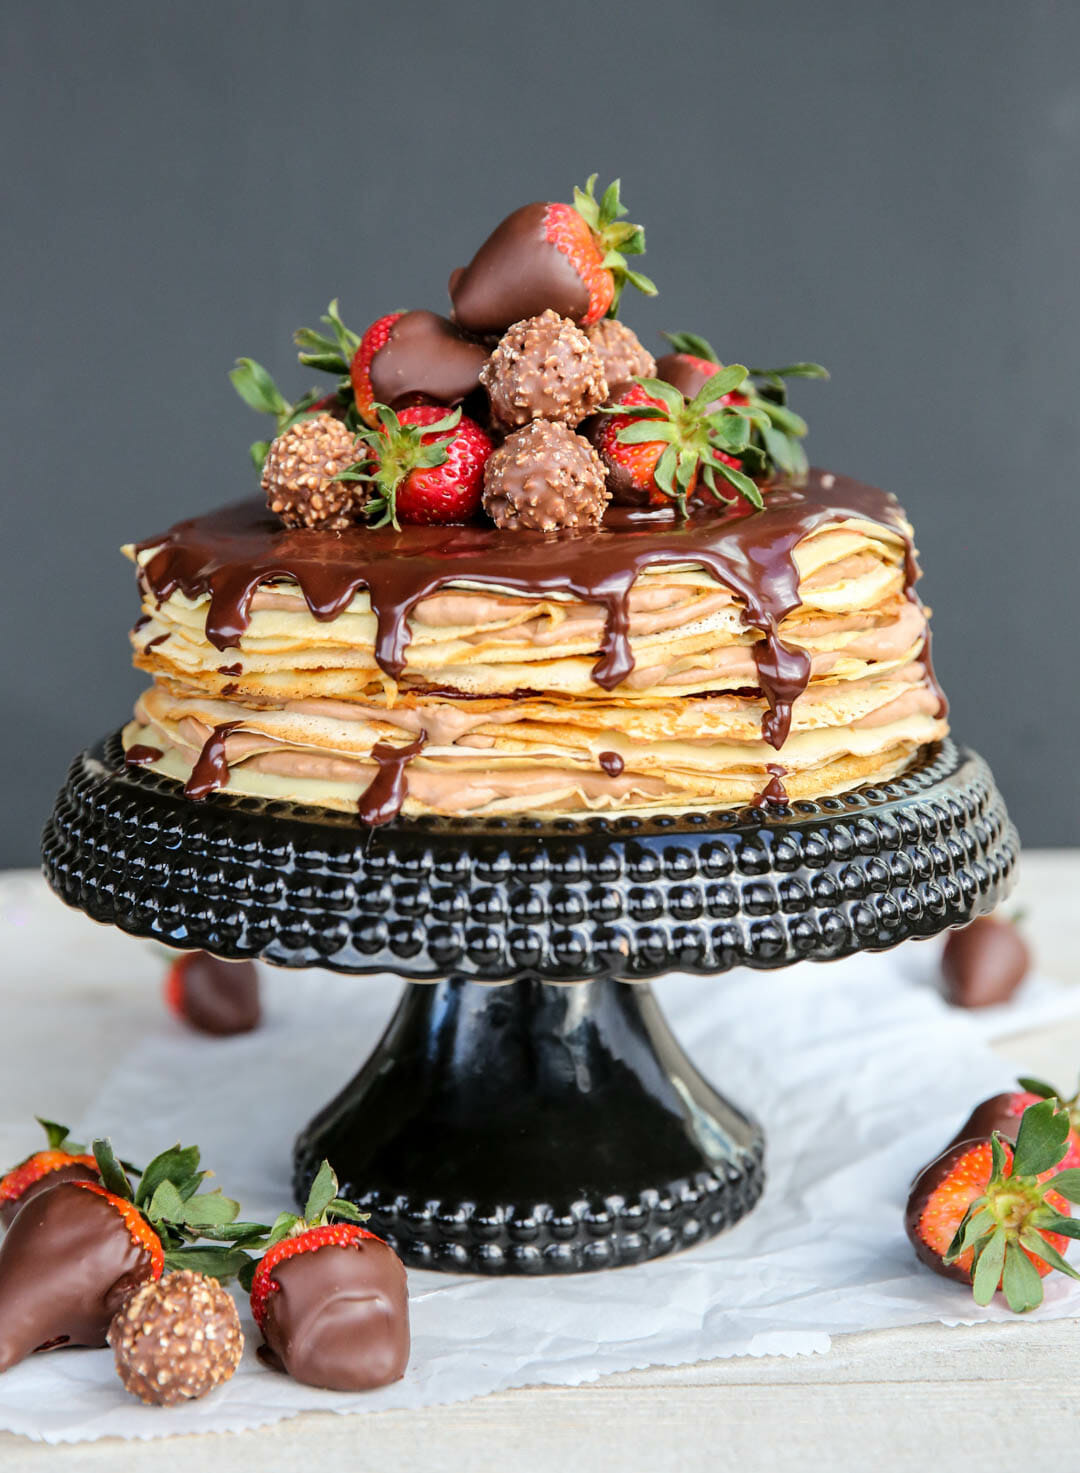 Crepe Cake Our Best Bites